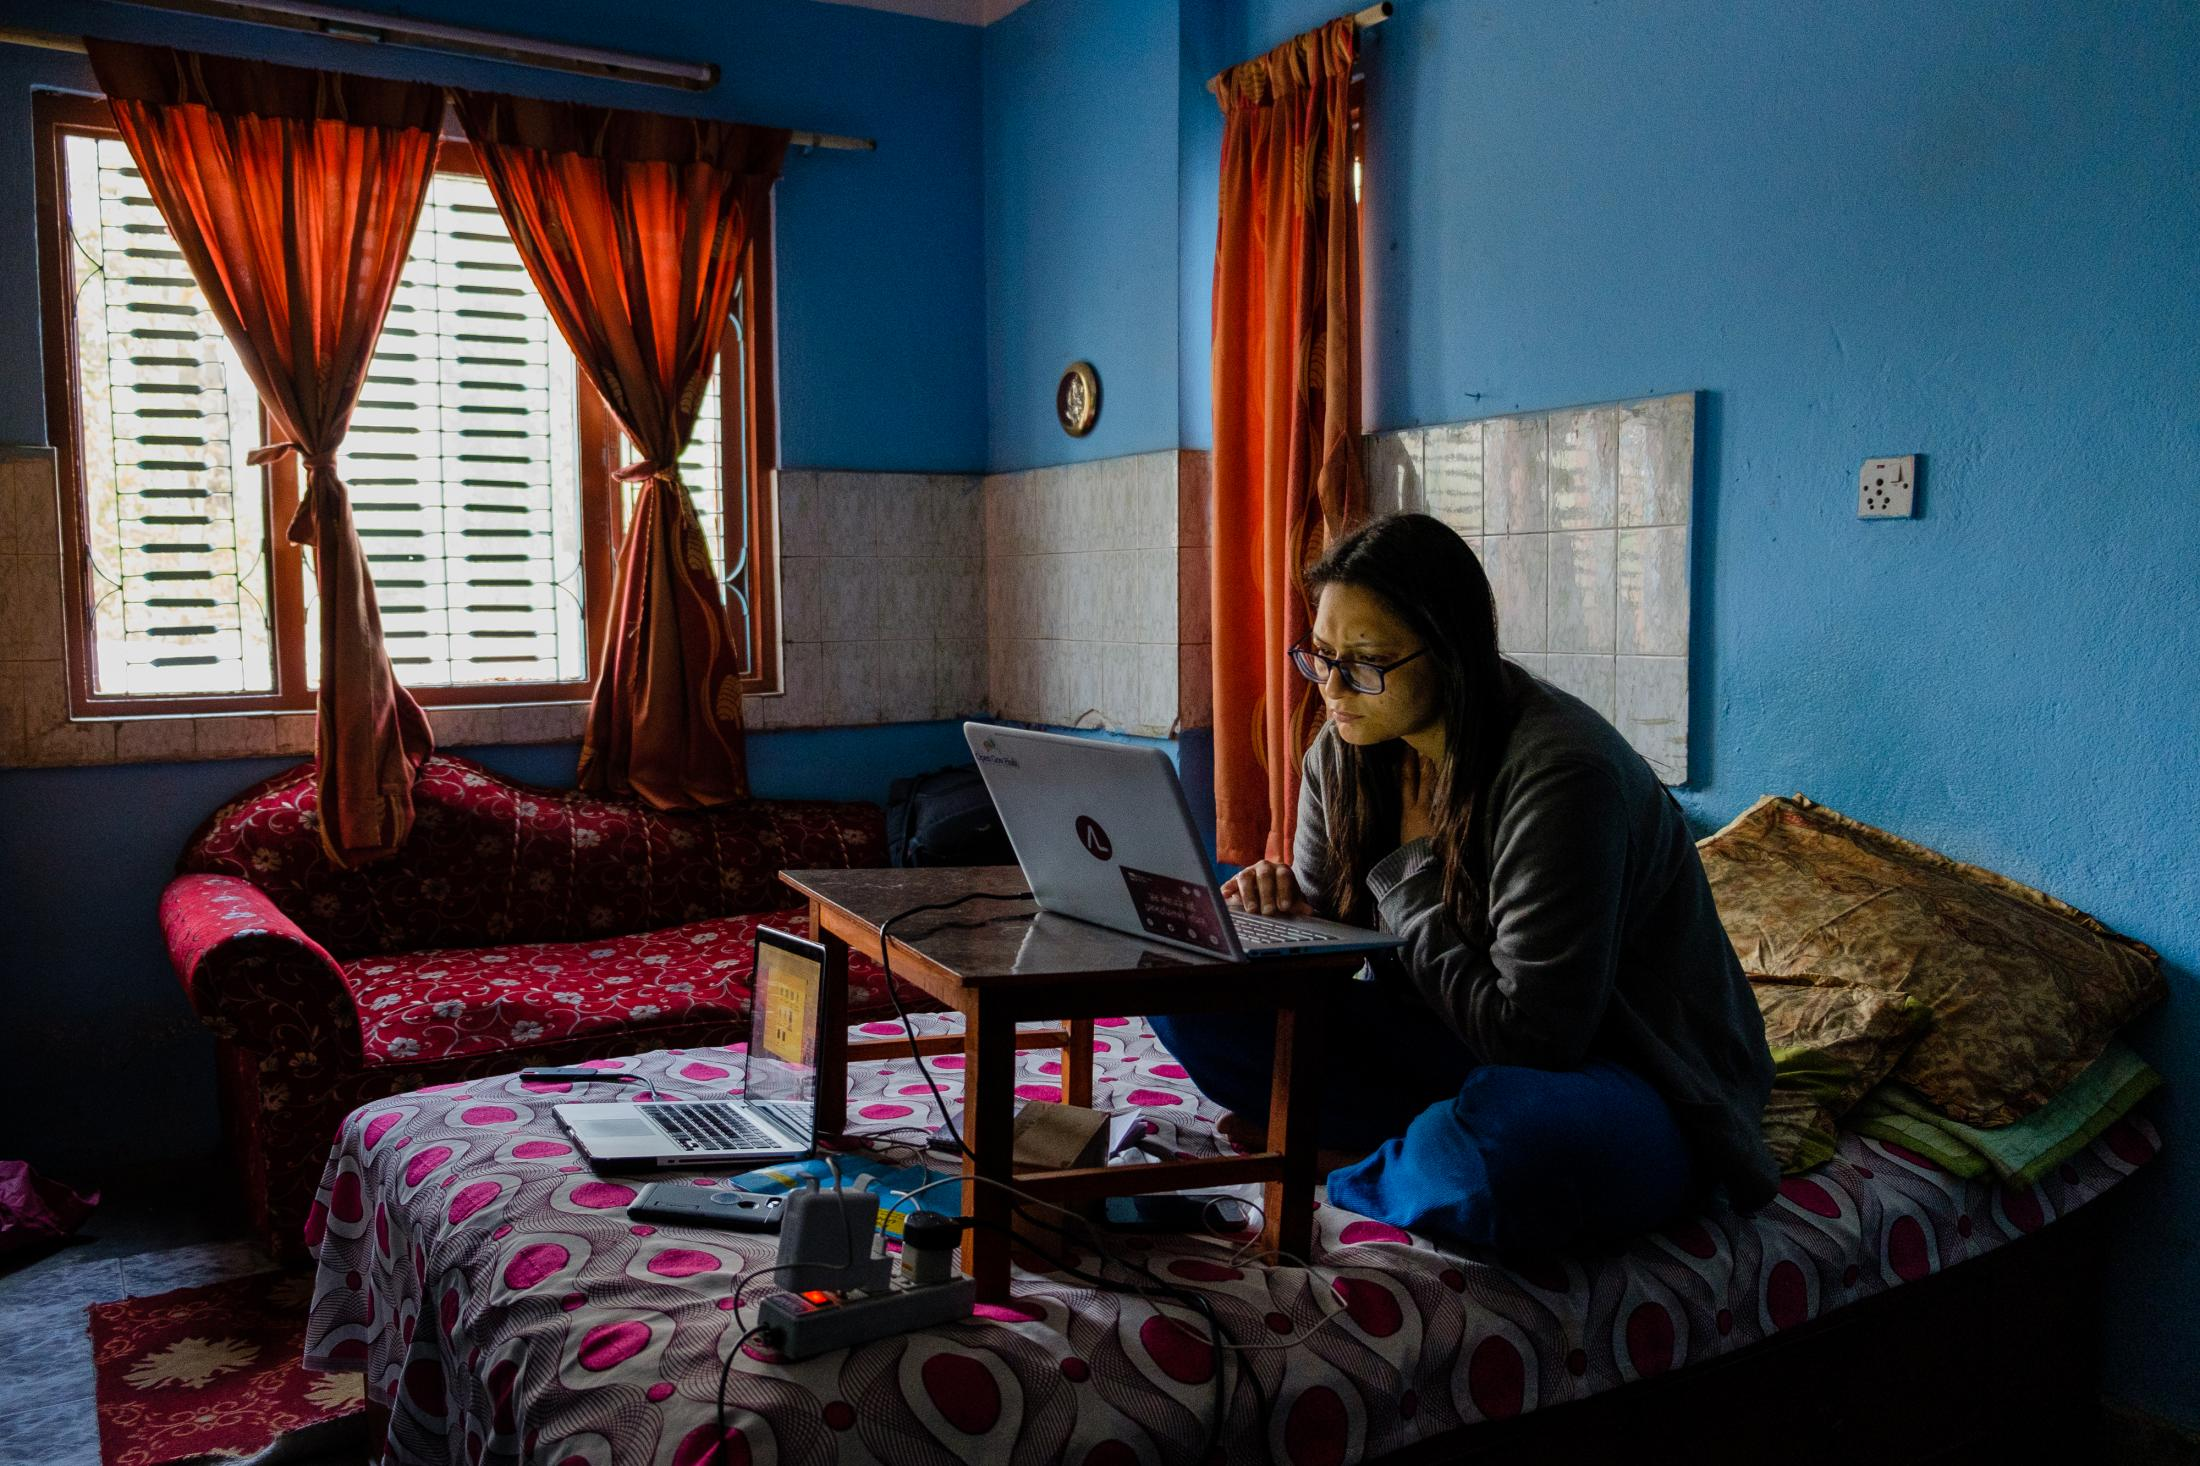 Ashmita Sharma, Program Officer for Integrity Icon at Accountability Lab Nepal, works from her family's home in Kathmandu after receiving direction from the Accountability Lab Global team. This direction came 4 days before the government mandated stay at home order due to COVID19.